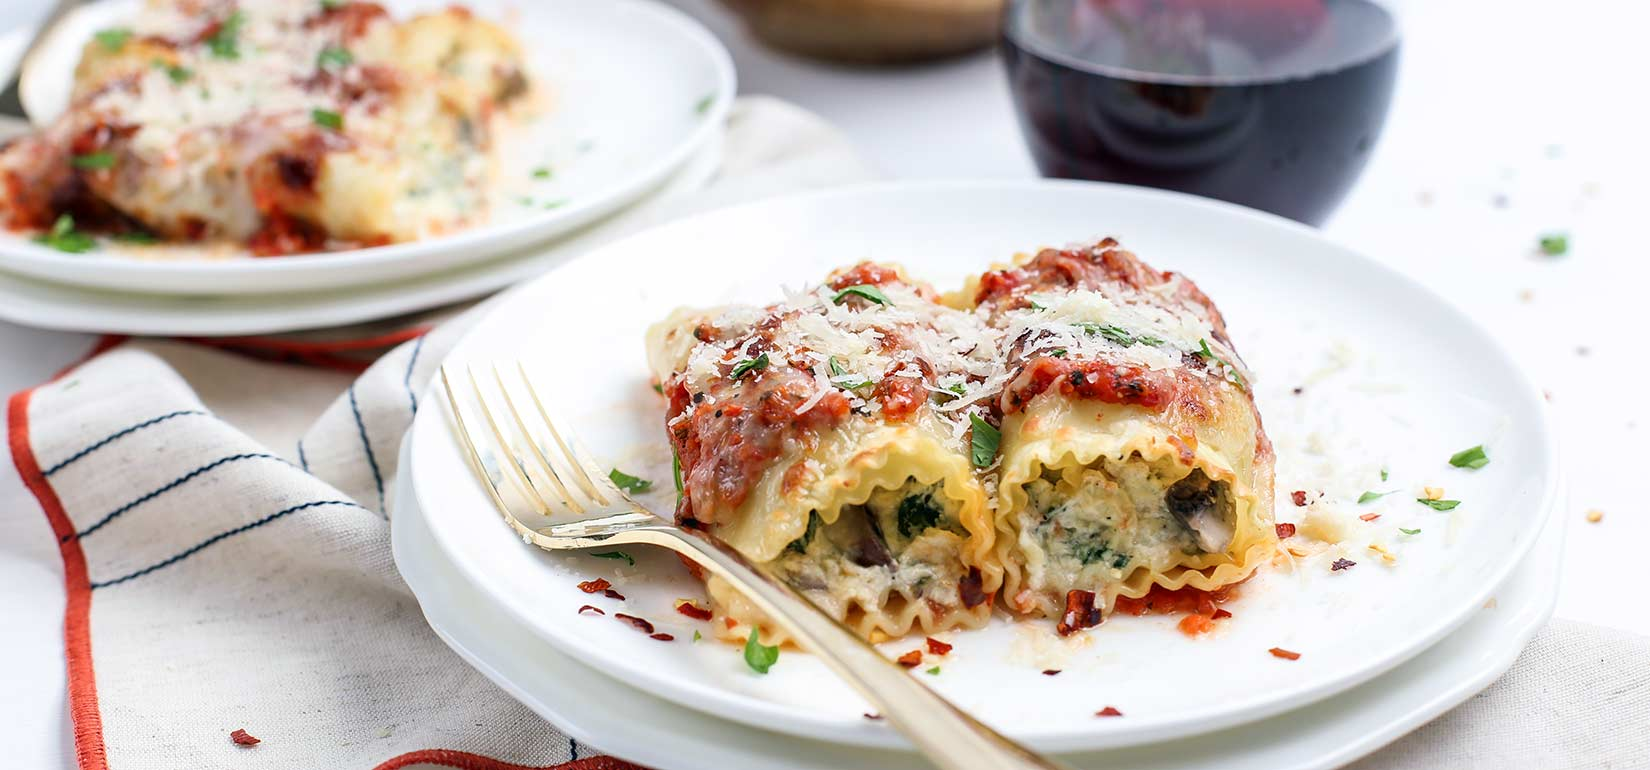 Simply Organic Holiday Organic Roasted Red Pepper Lasagna Roll-Ups Recipe